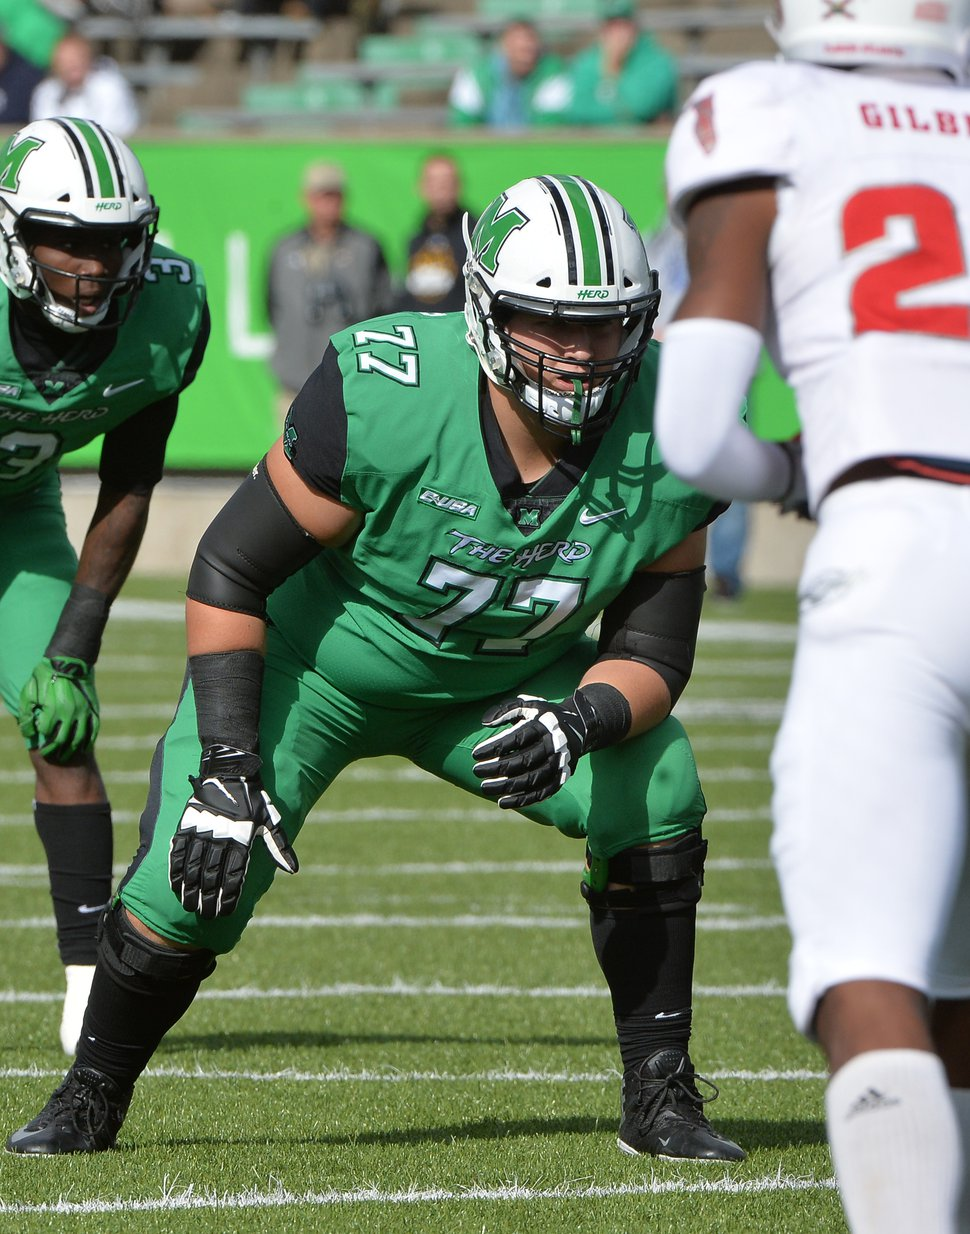 (Photo courtesy of Marshall University). Offensive lineman Alex Locklear, shown playing for Marshall, has transferred to Utah for his final season of eligibility.